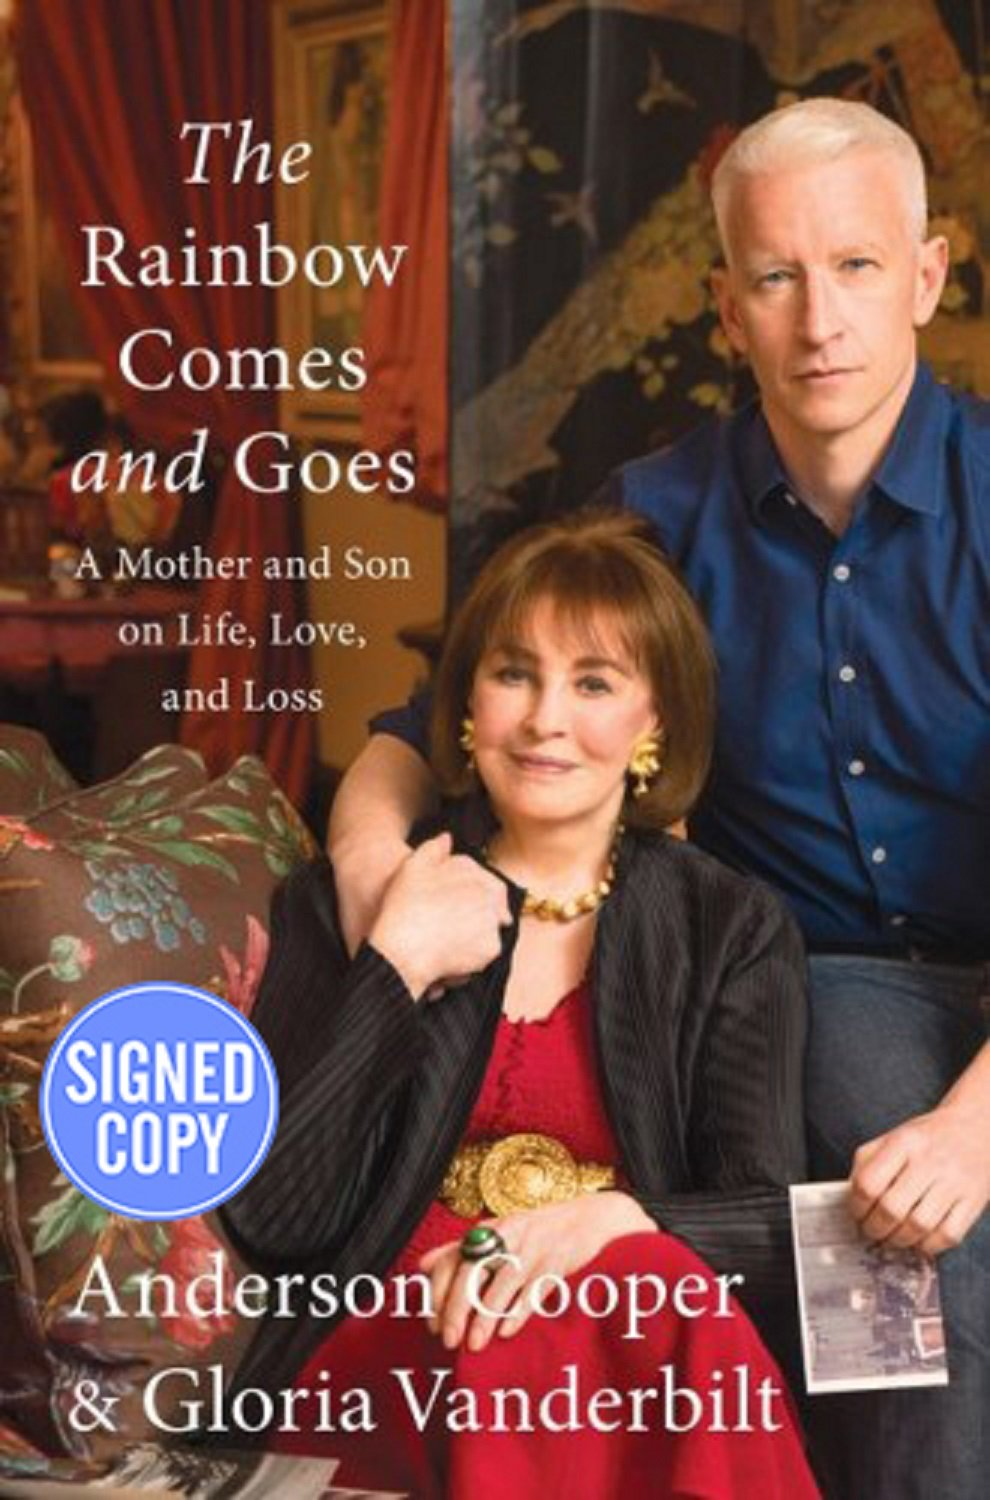 The Rainbow Comes and Goes: A Mother and Son On Life, Love, and Loss - Autographed Signed Copy PDF